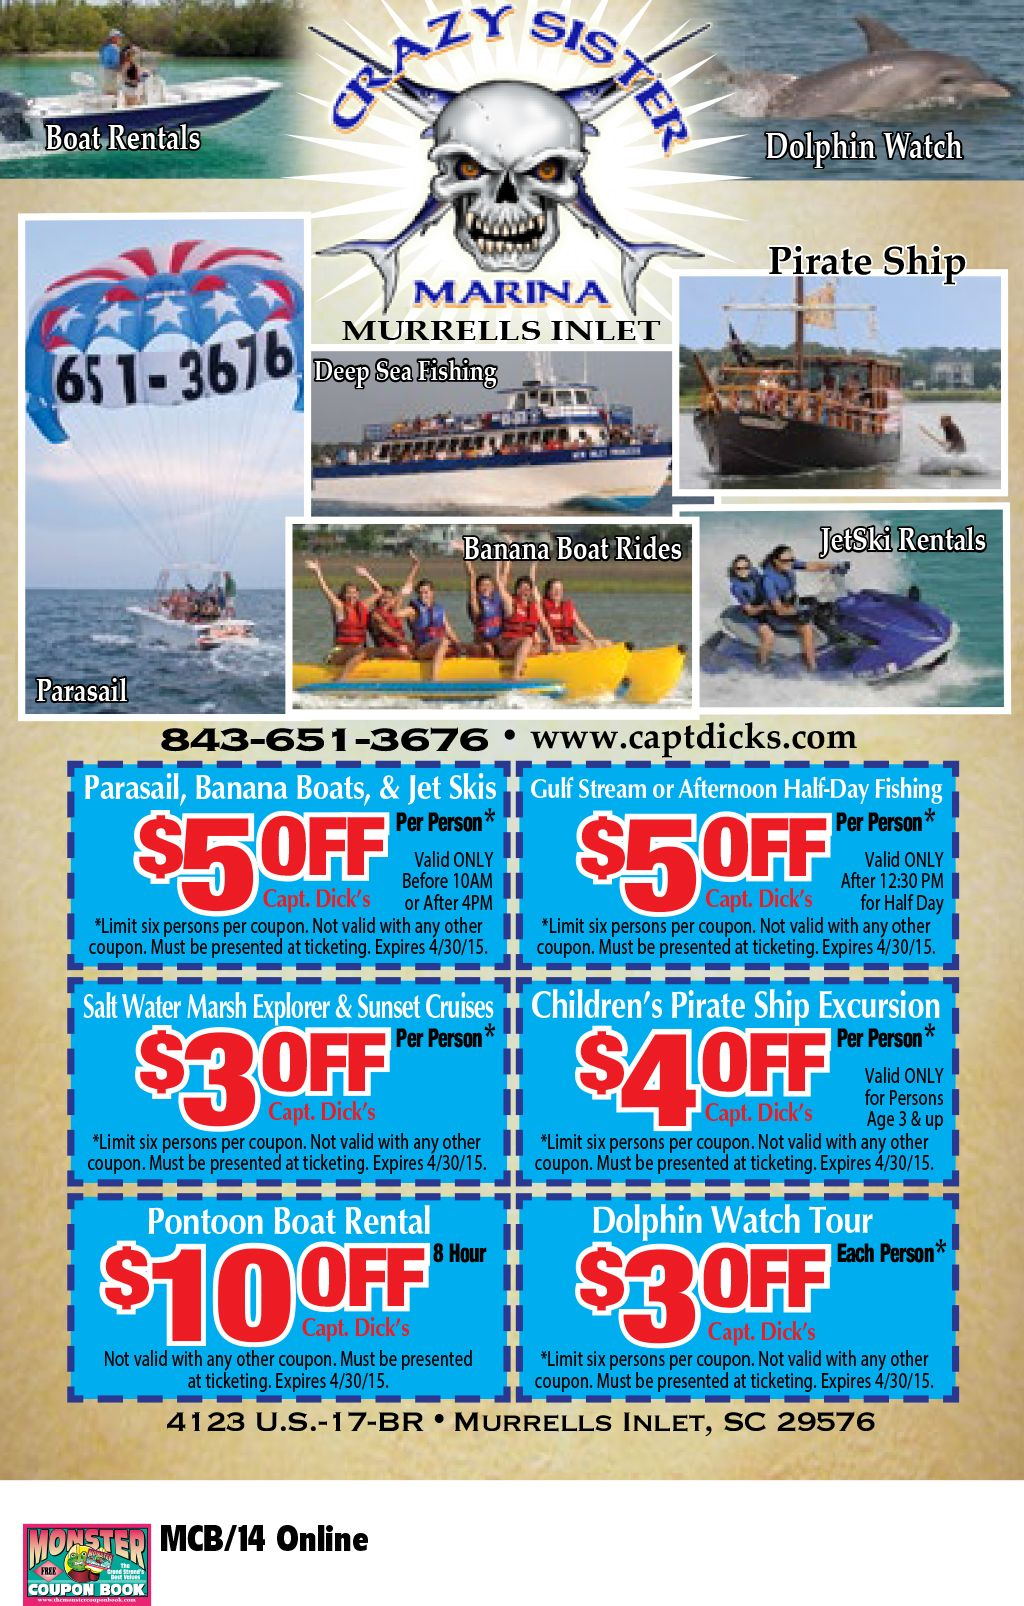 Crazy Sister Marina   Myrtle Beach Resorts   COUPONS for Myrtle ...